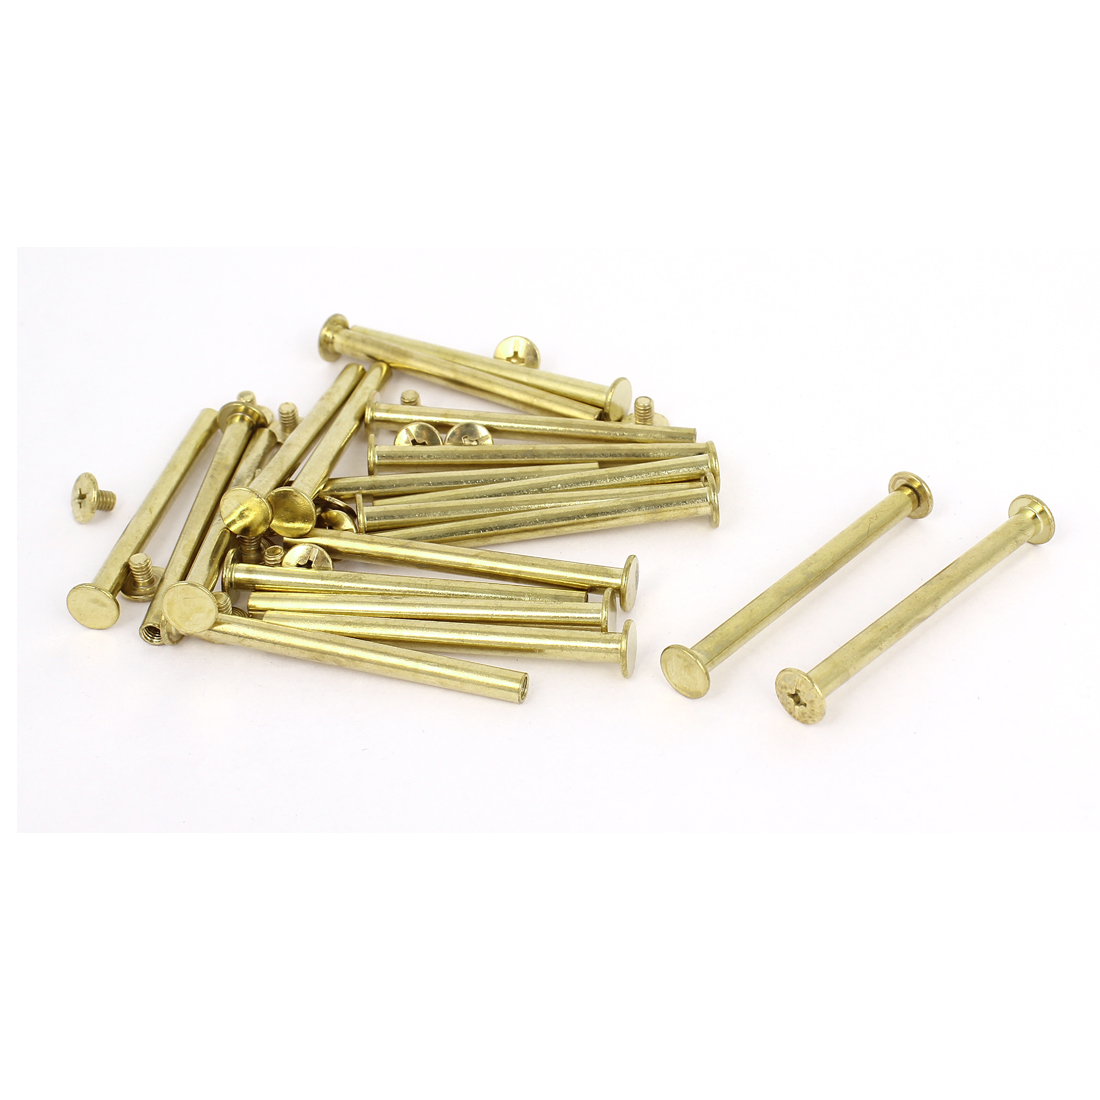 Brass Plated 5x60mm Binding Chicago Screw Post 20pcs for Leather Scrapbook